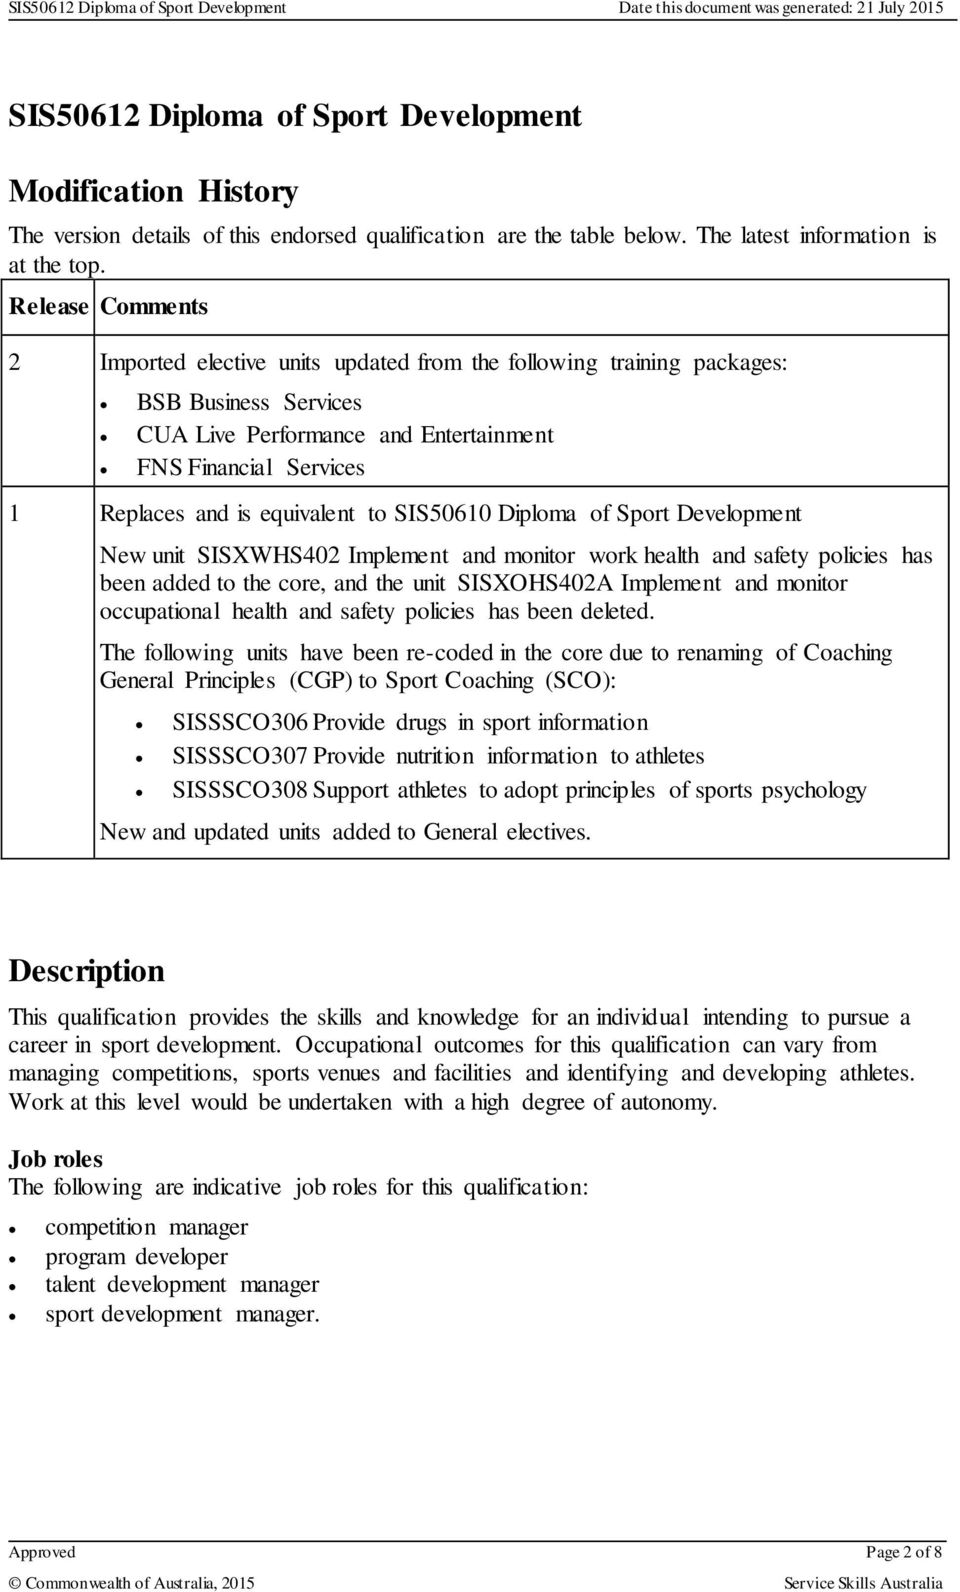 equivalent to SIS50610 Diploma of Sport Development New unit SISXWHS402 Implement and monitor work health and safety policies has been added to the core, and the unit SISXOHS402A Implement and